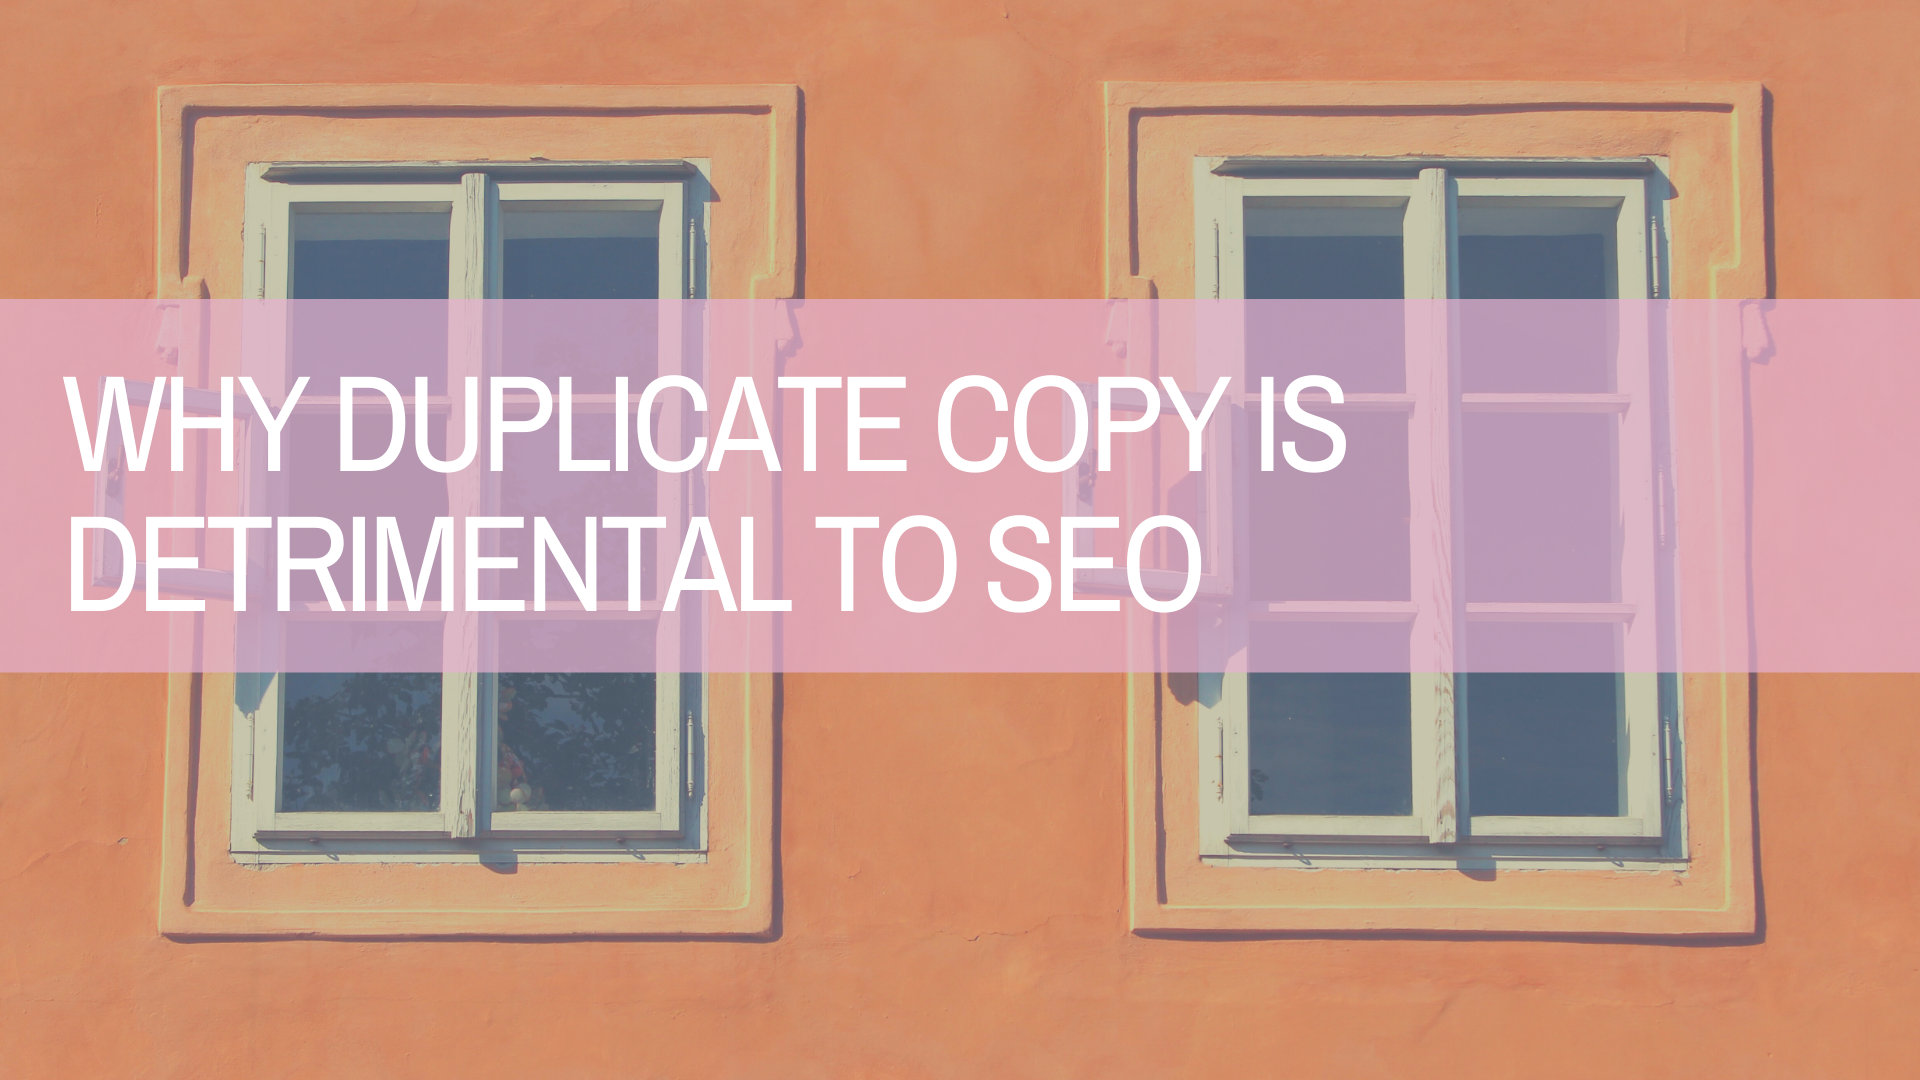 duplicate copy. why is it detrimental? amplihigher copywriting ageny freelance copywriters